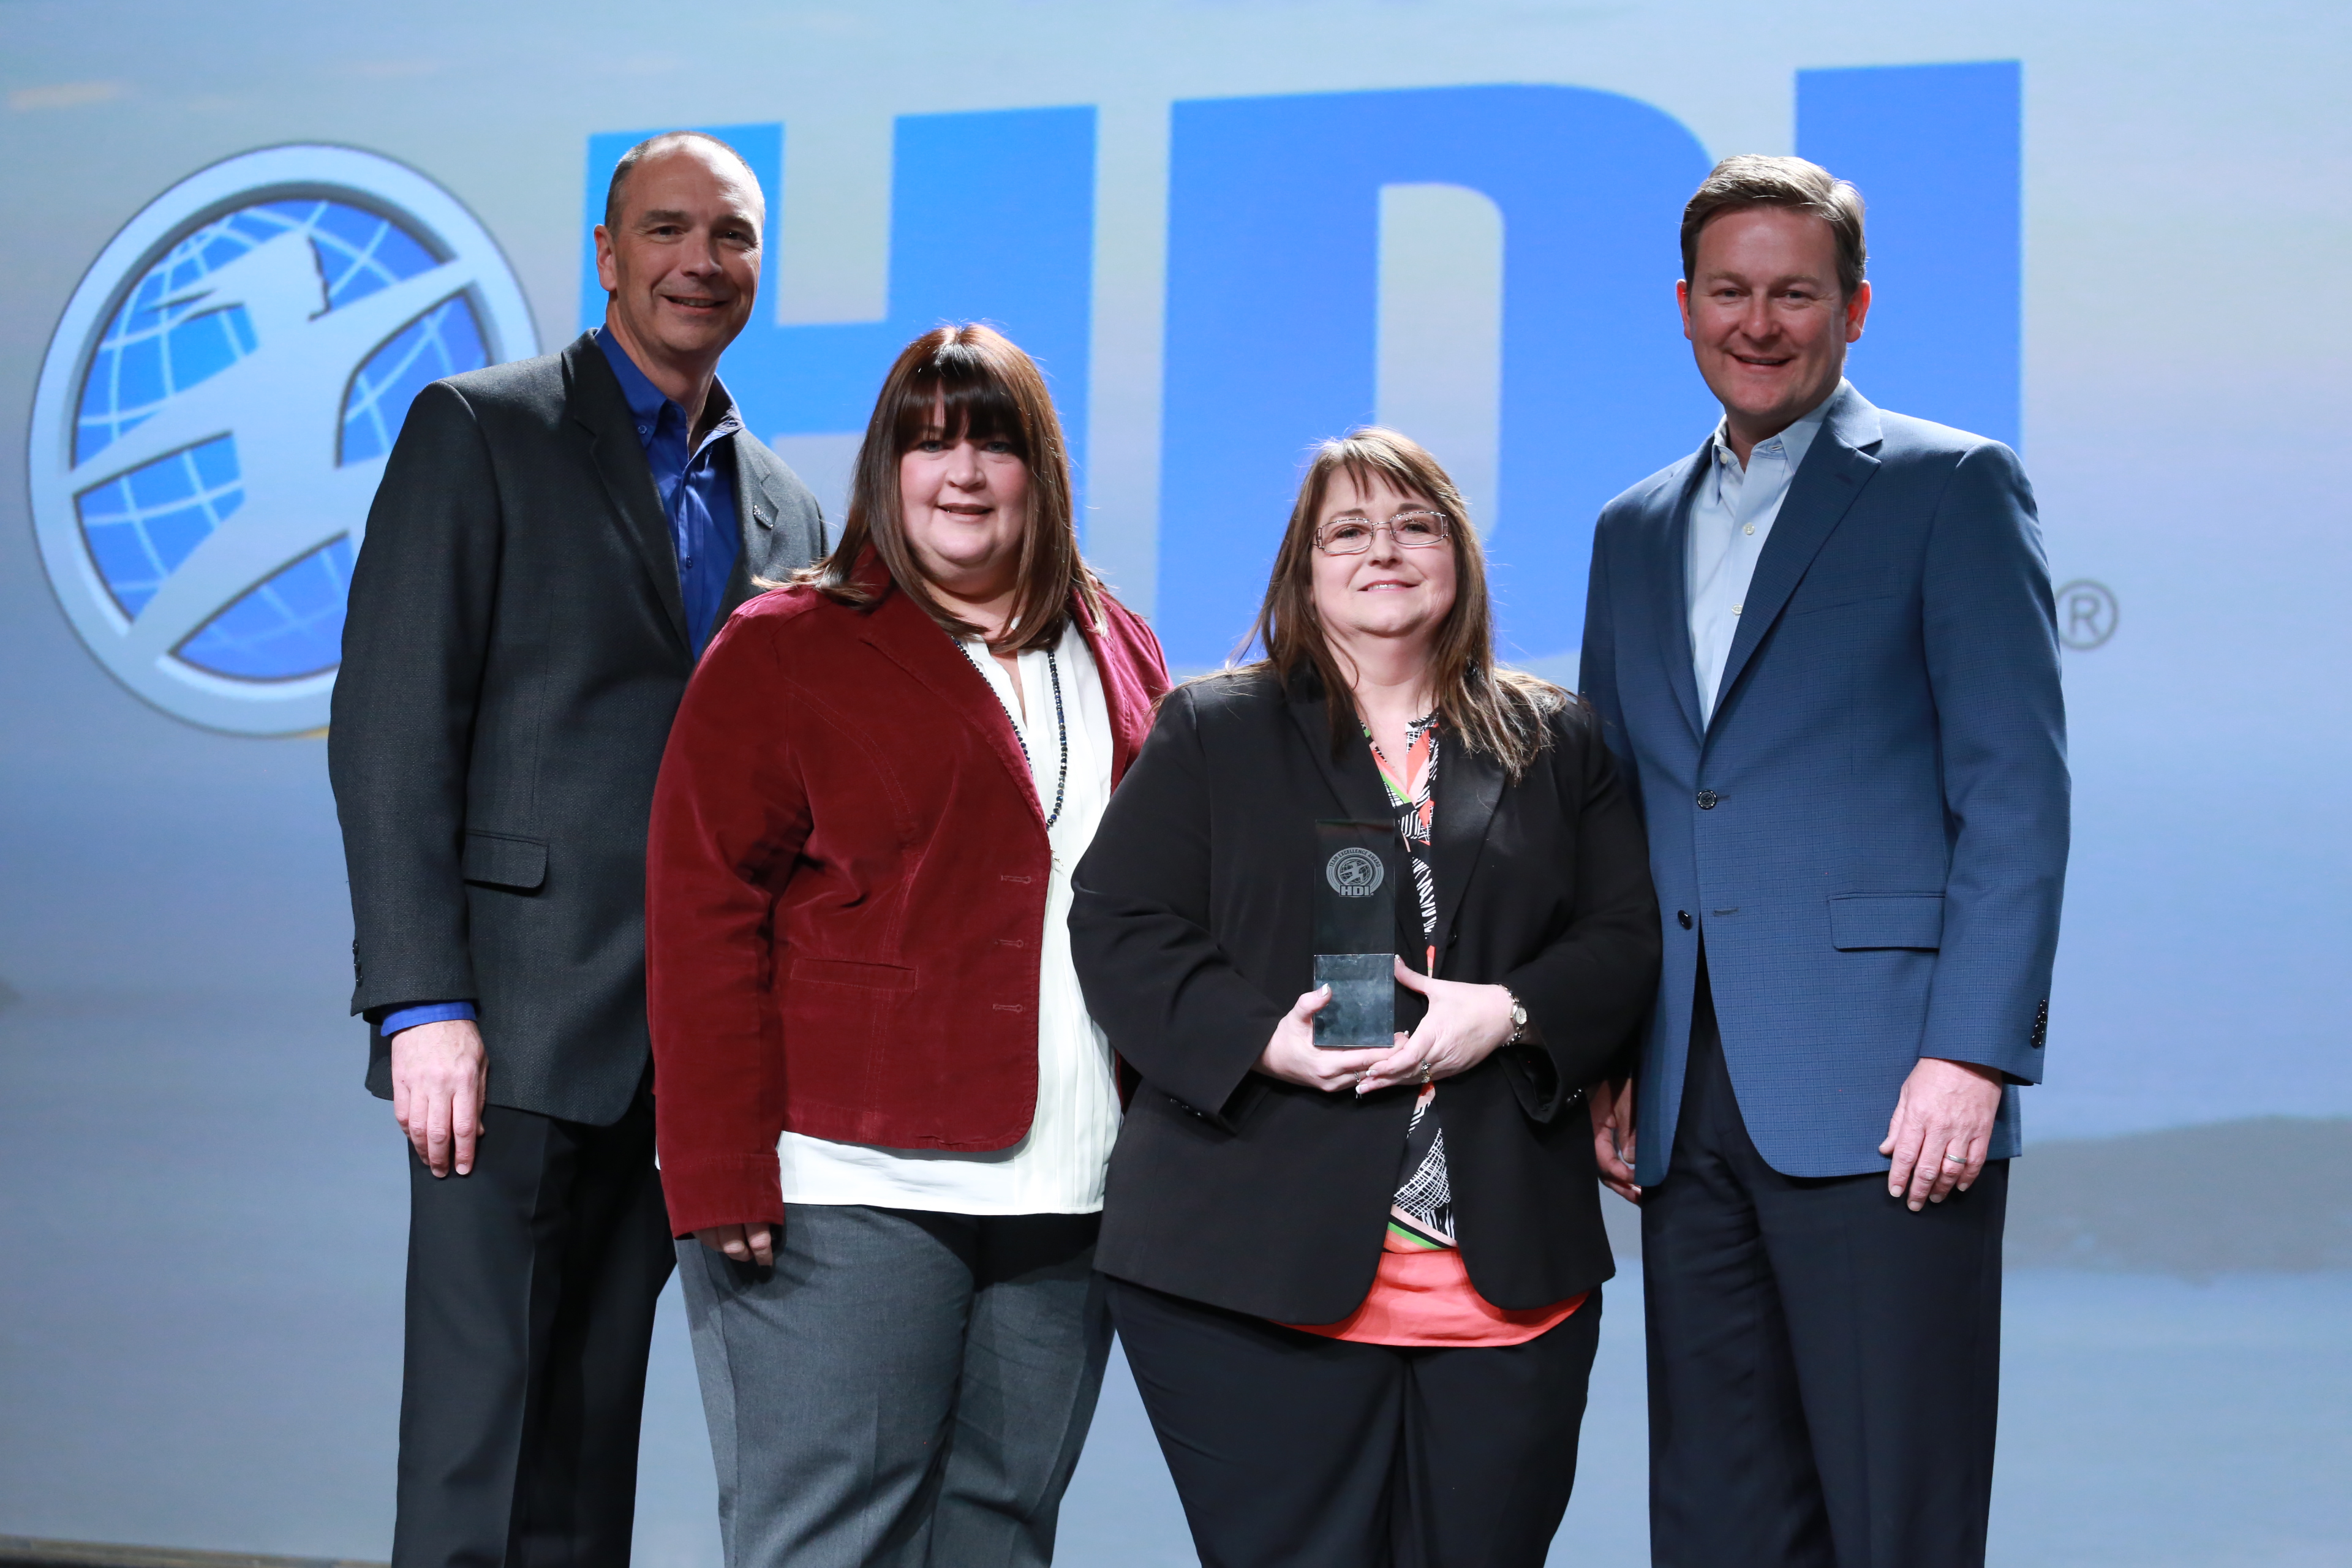 Team Excellence Winner at HDI 2015